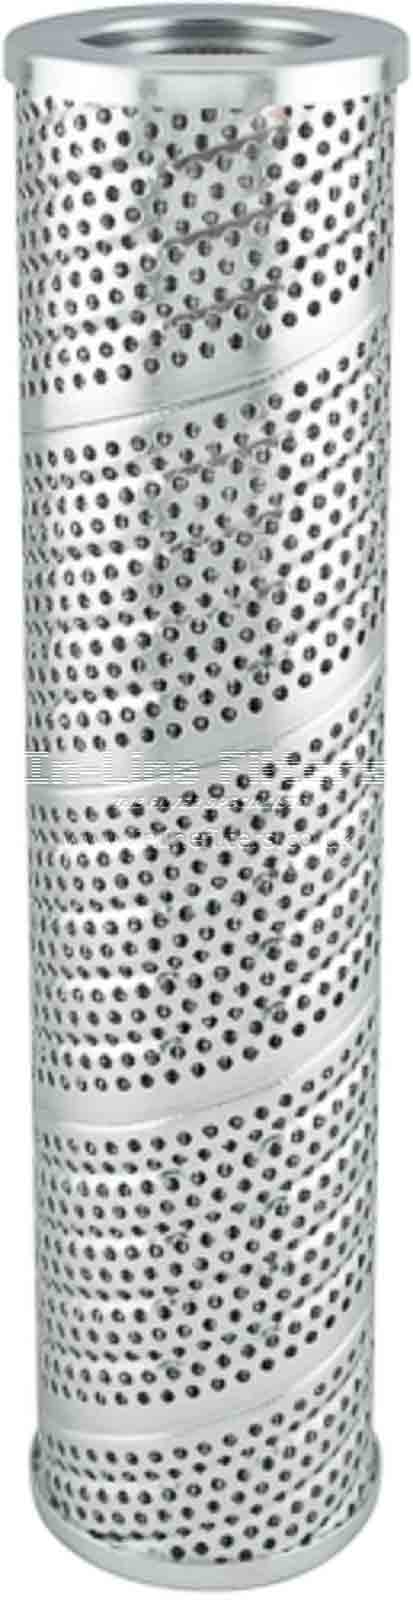 FBW-PT9479-MPG FILTER-Hydraulic(Brand Specific-Baldwin PT9479-MPG) - Click Image to Close